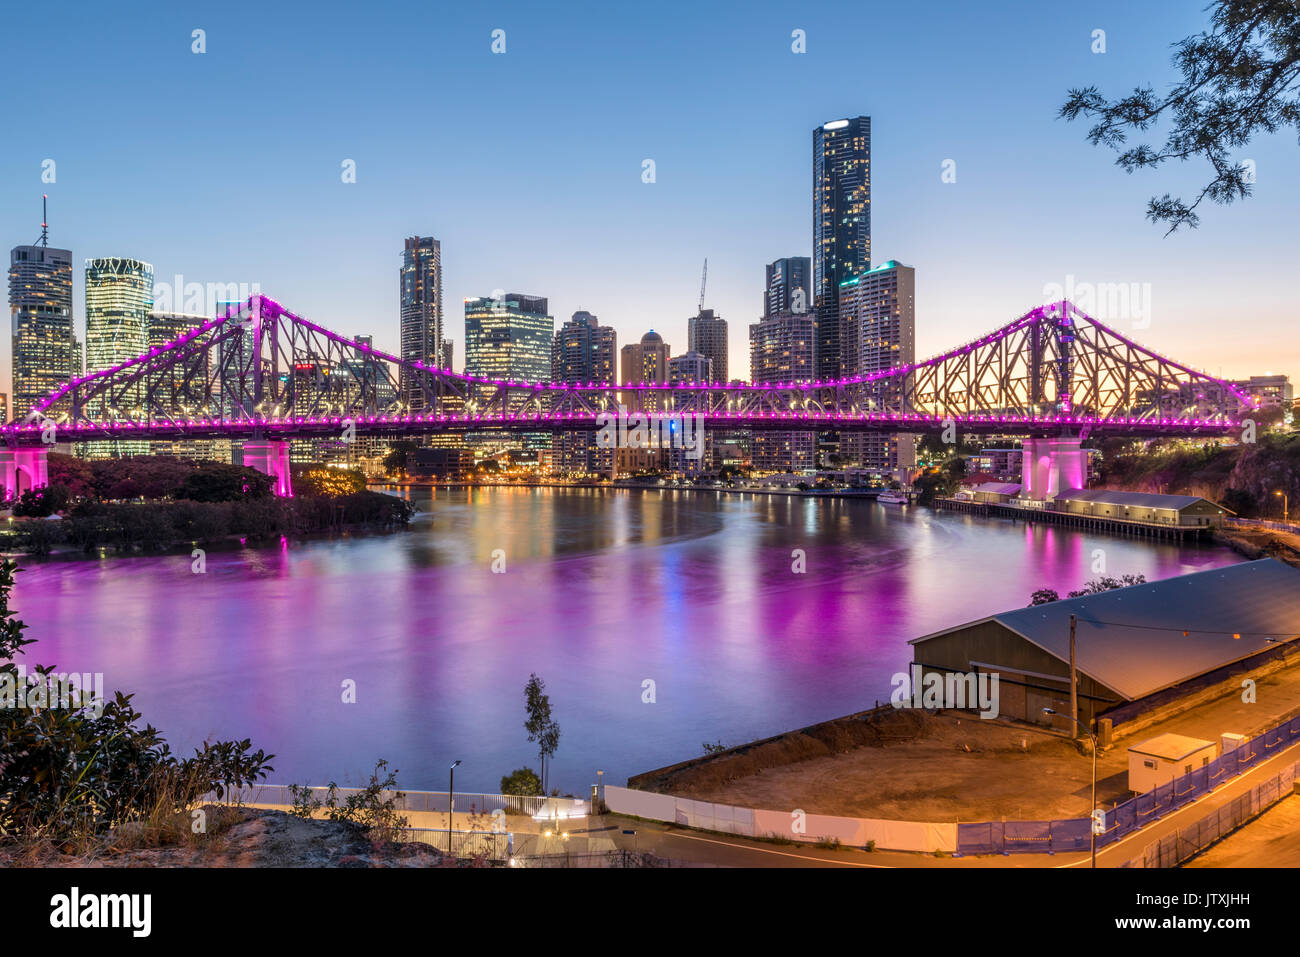 Story bridge over the Brisbane river - Stock Image